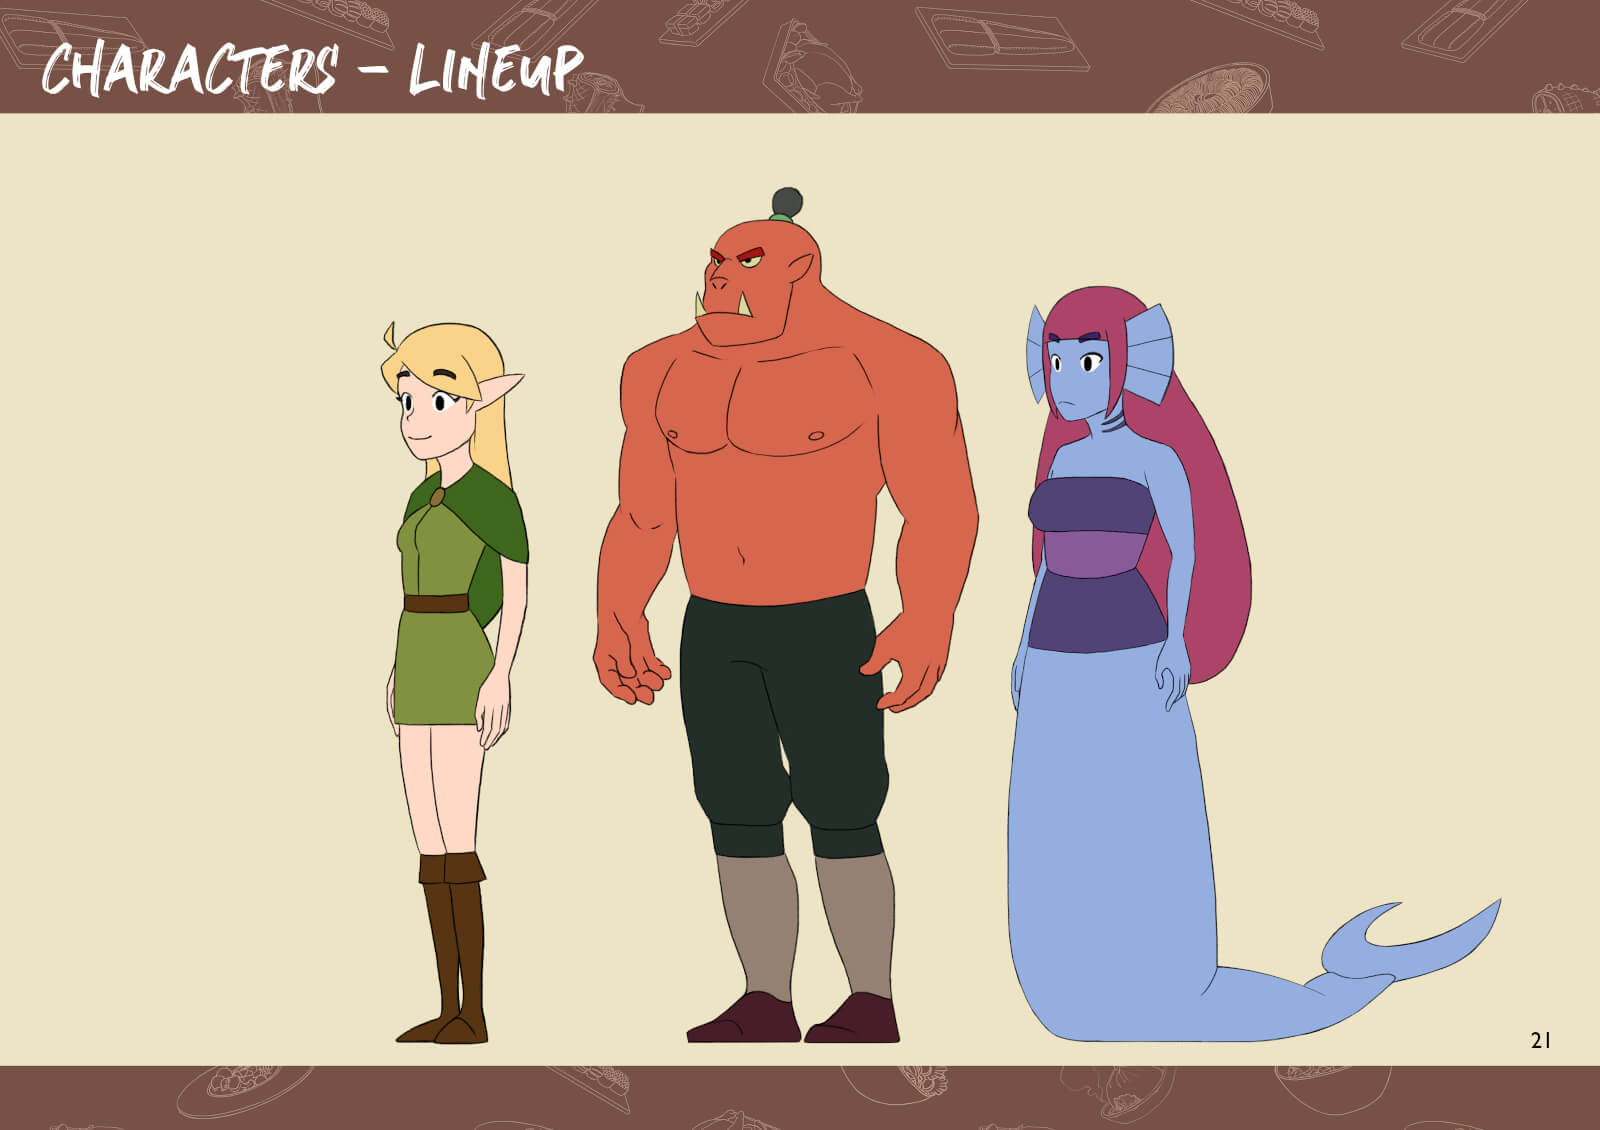 Elf, orc, and mermaid